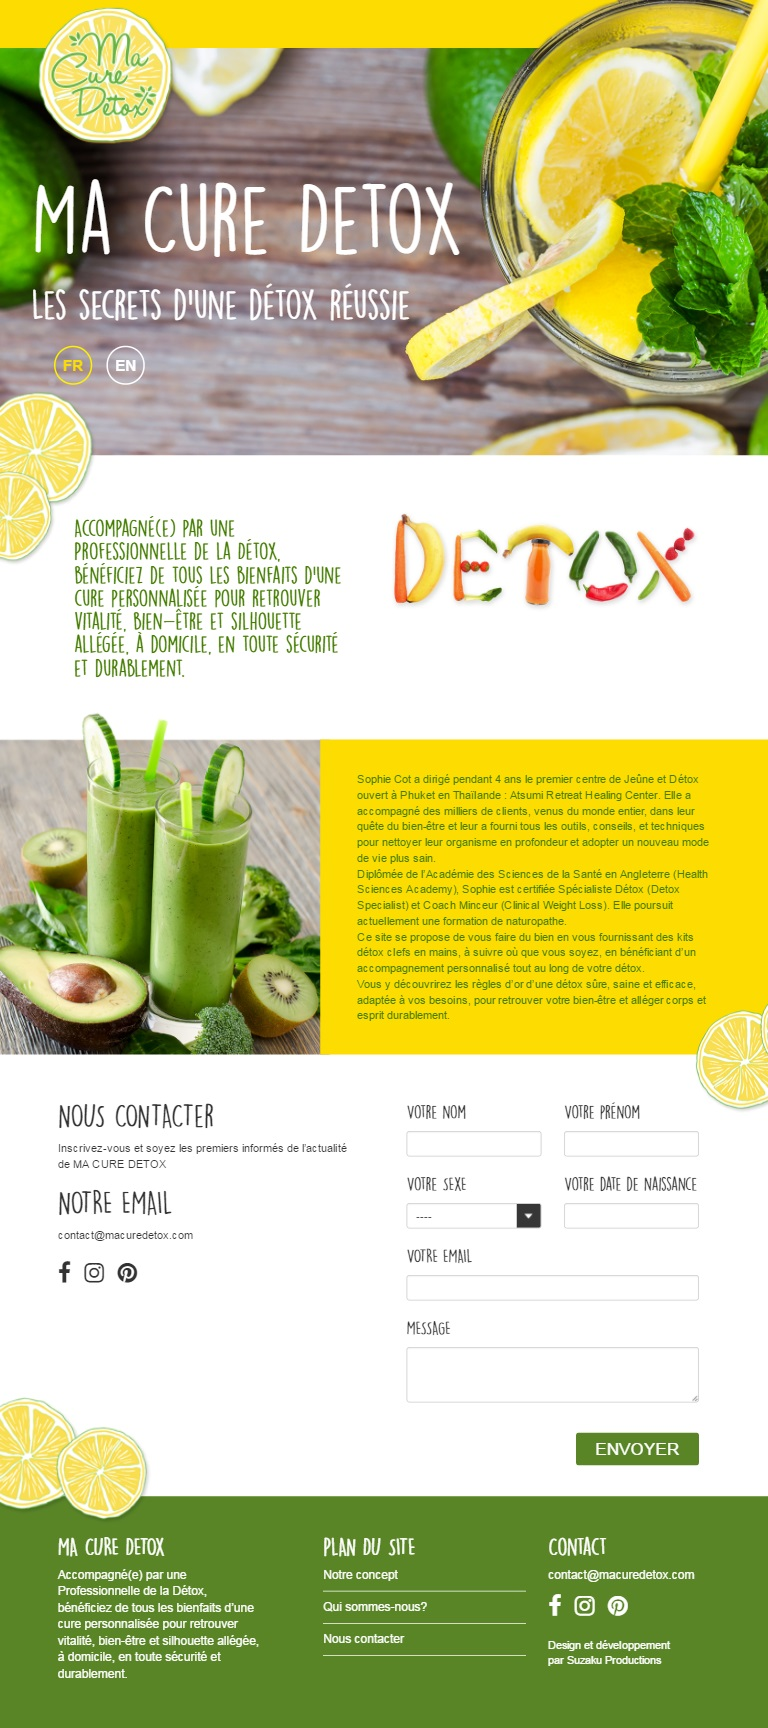 Macure detox tablet view webdesign by Suzaku